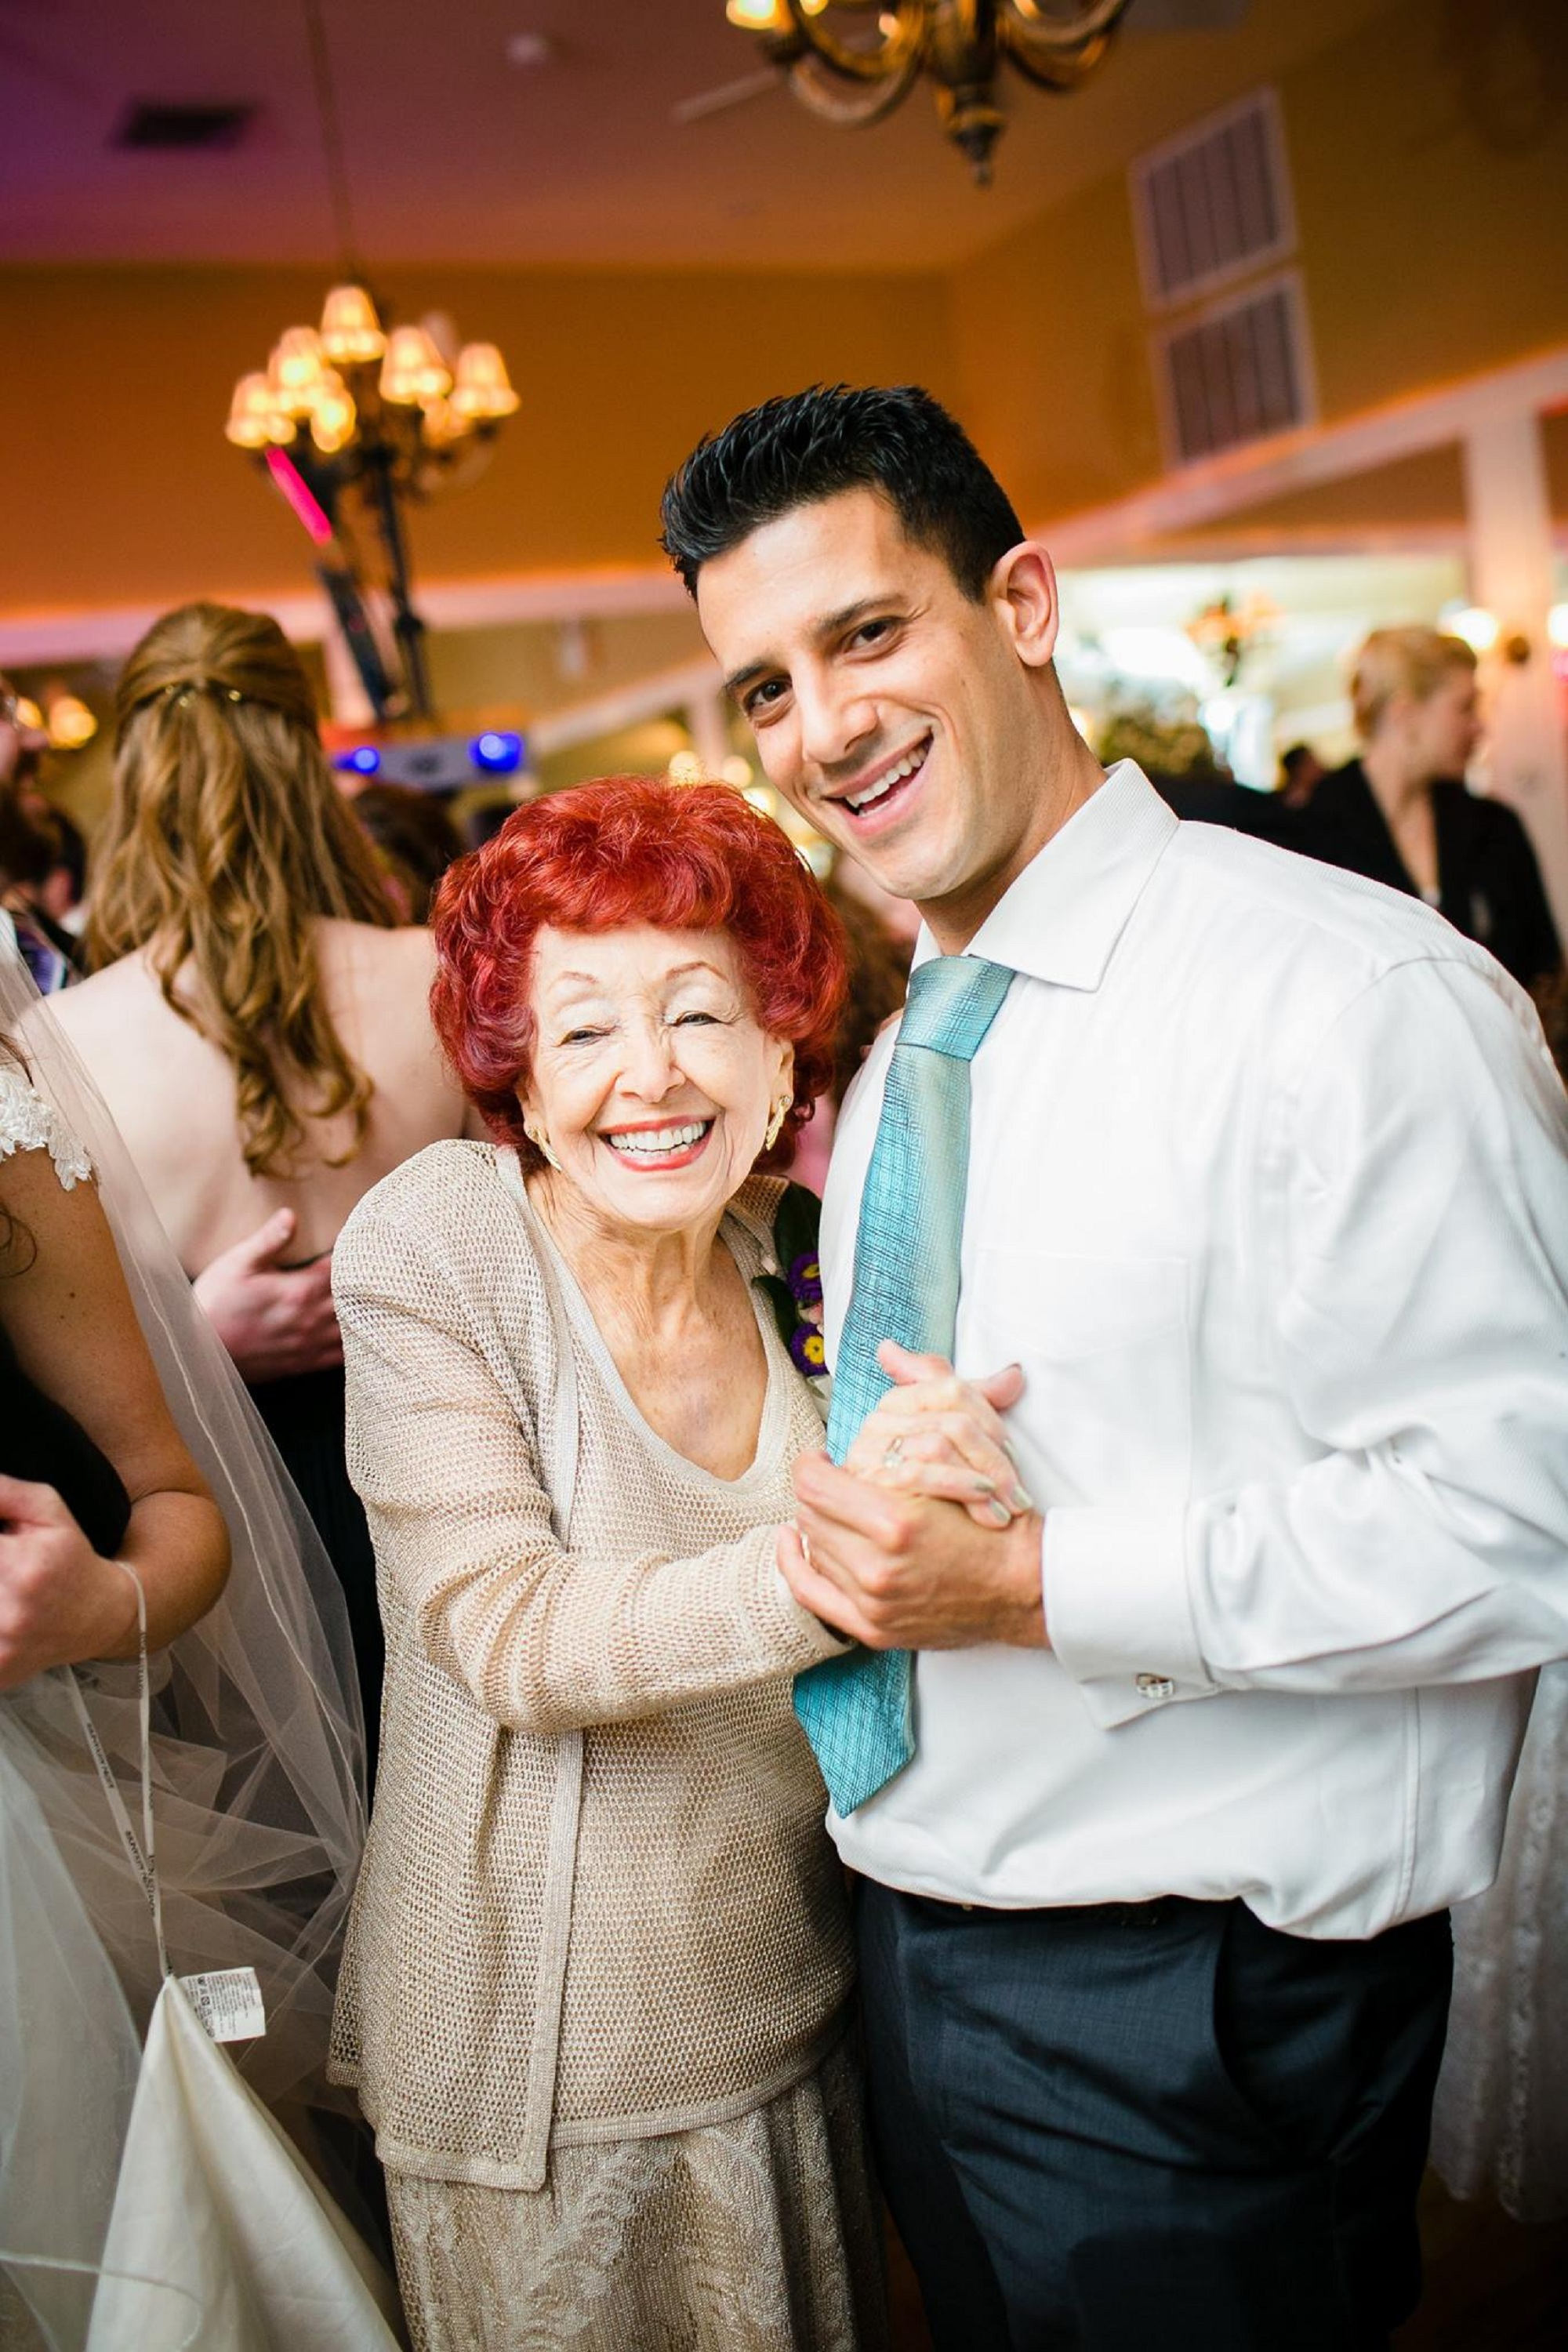 An older woman and younger man dancing at a wedding